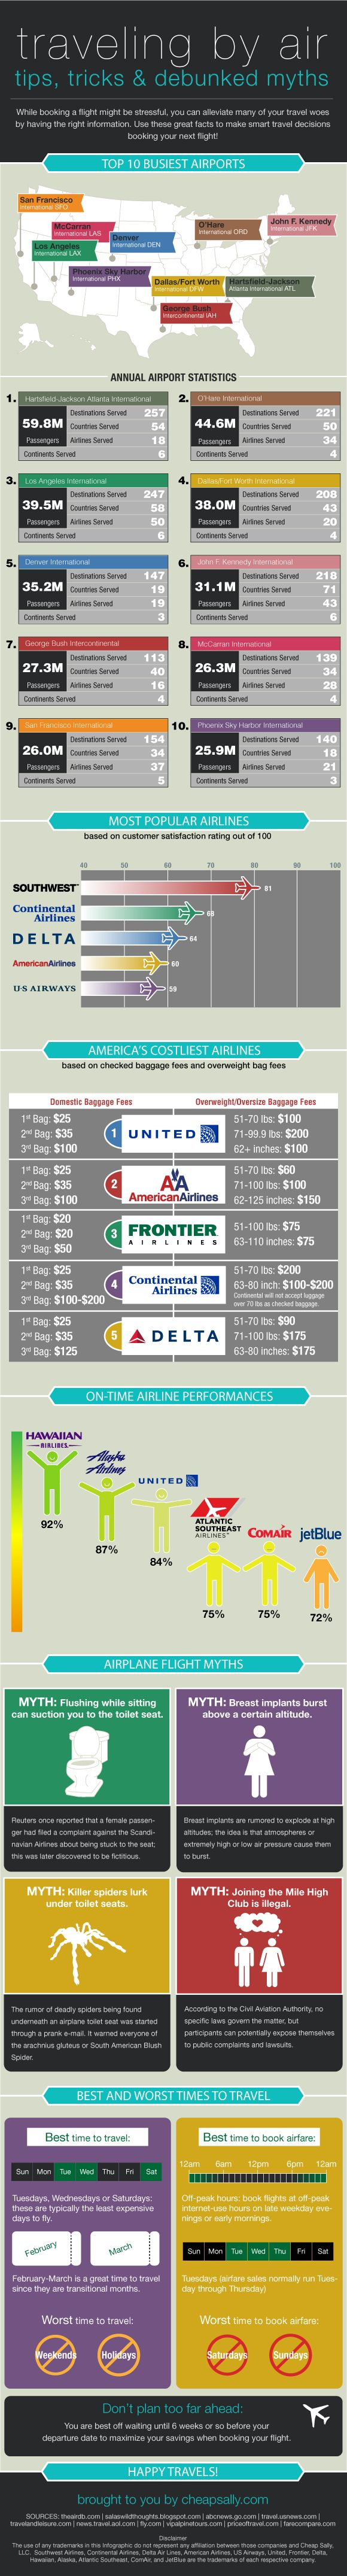 airline booking infographic - Prepare for Take Off: The Facts You Need to Fly Smart